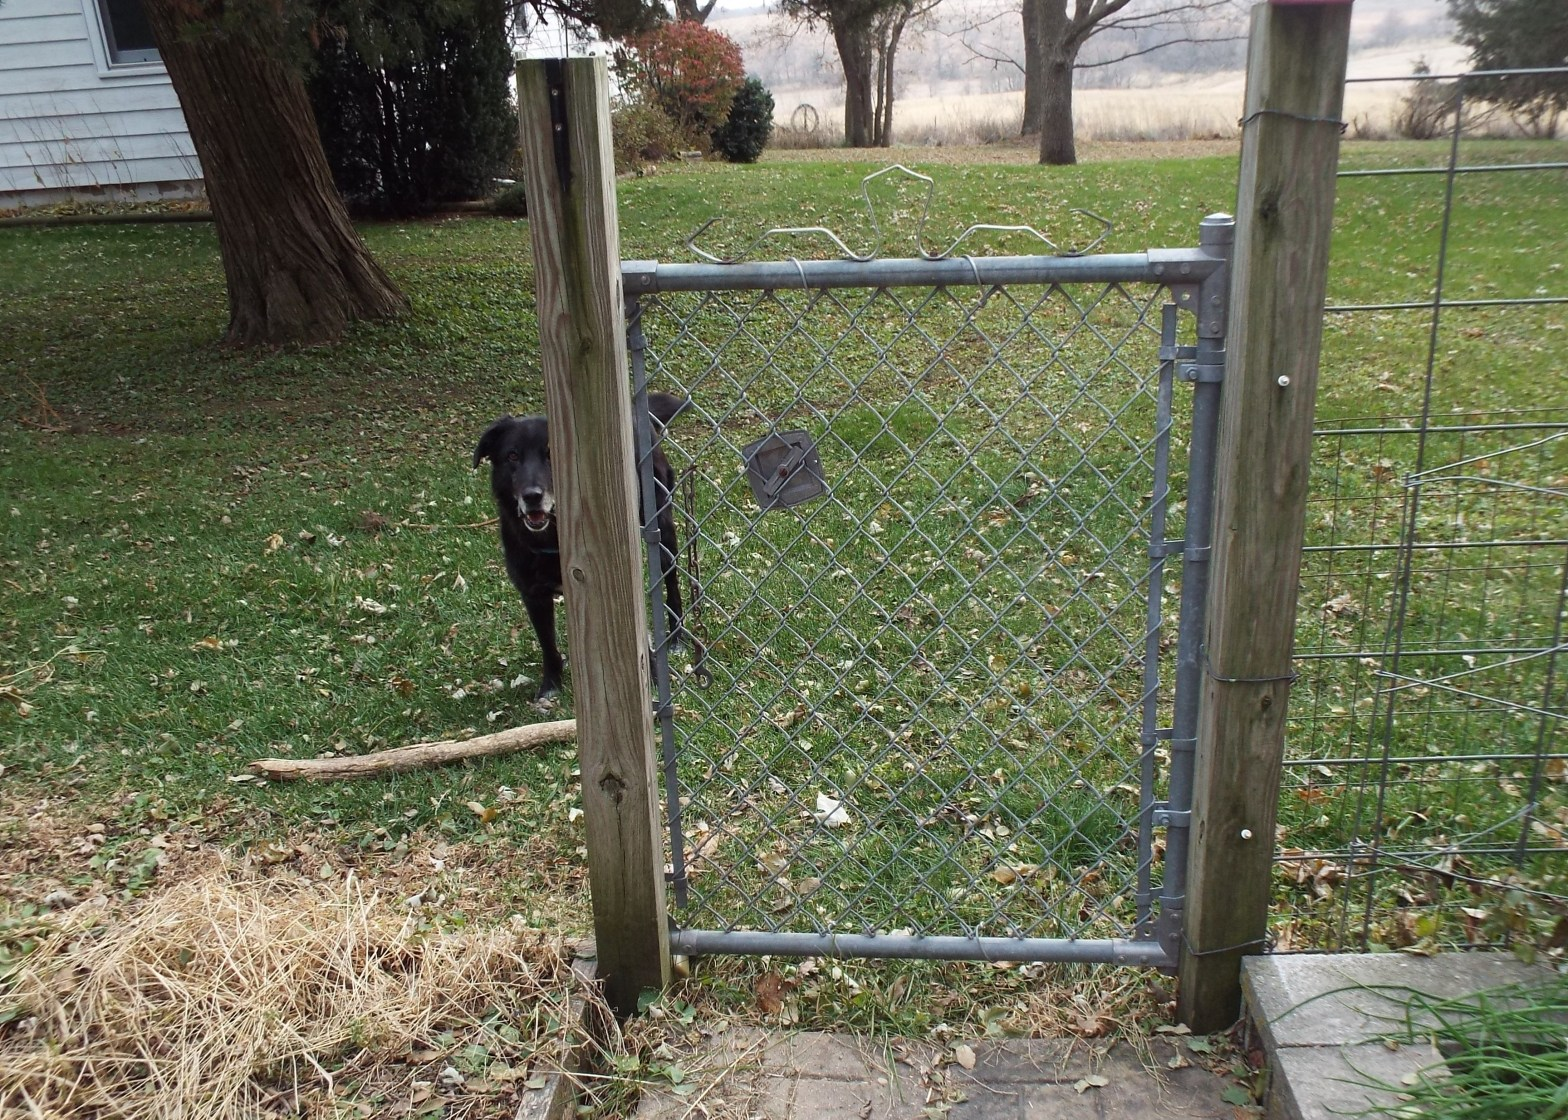 photo of a gate with no fence, a dog peers past the gate where there is no fence